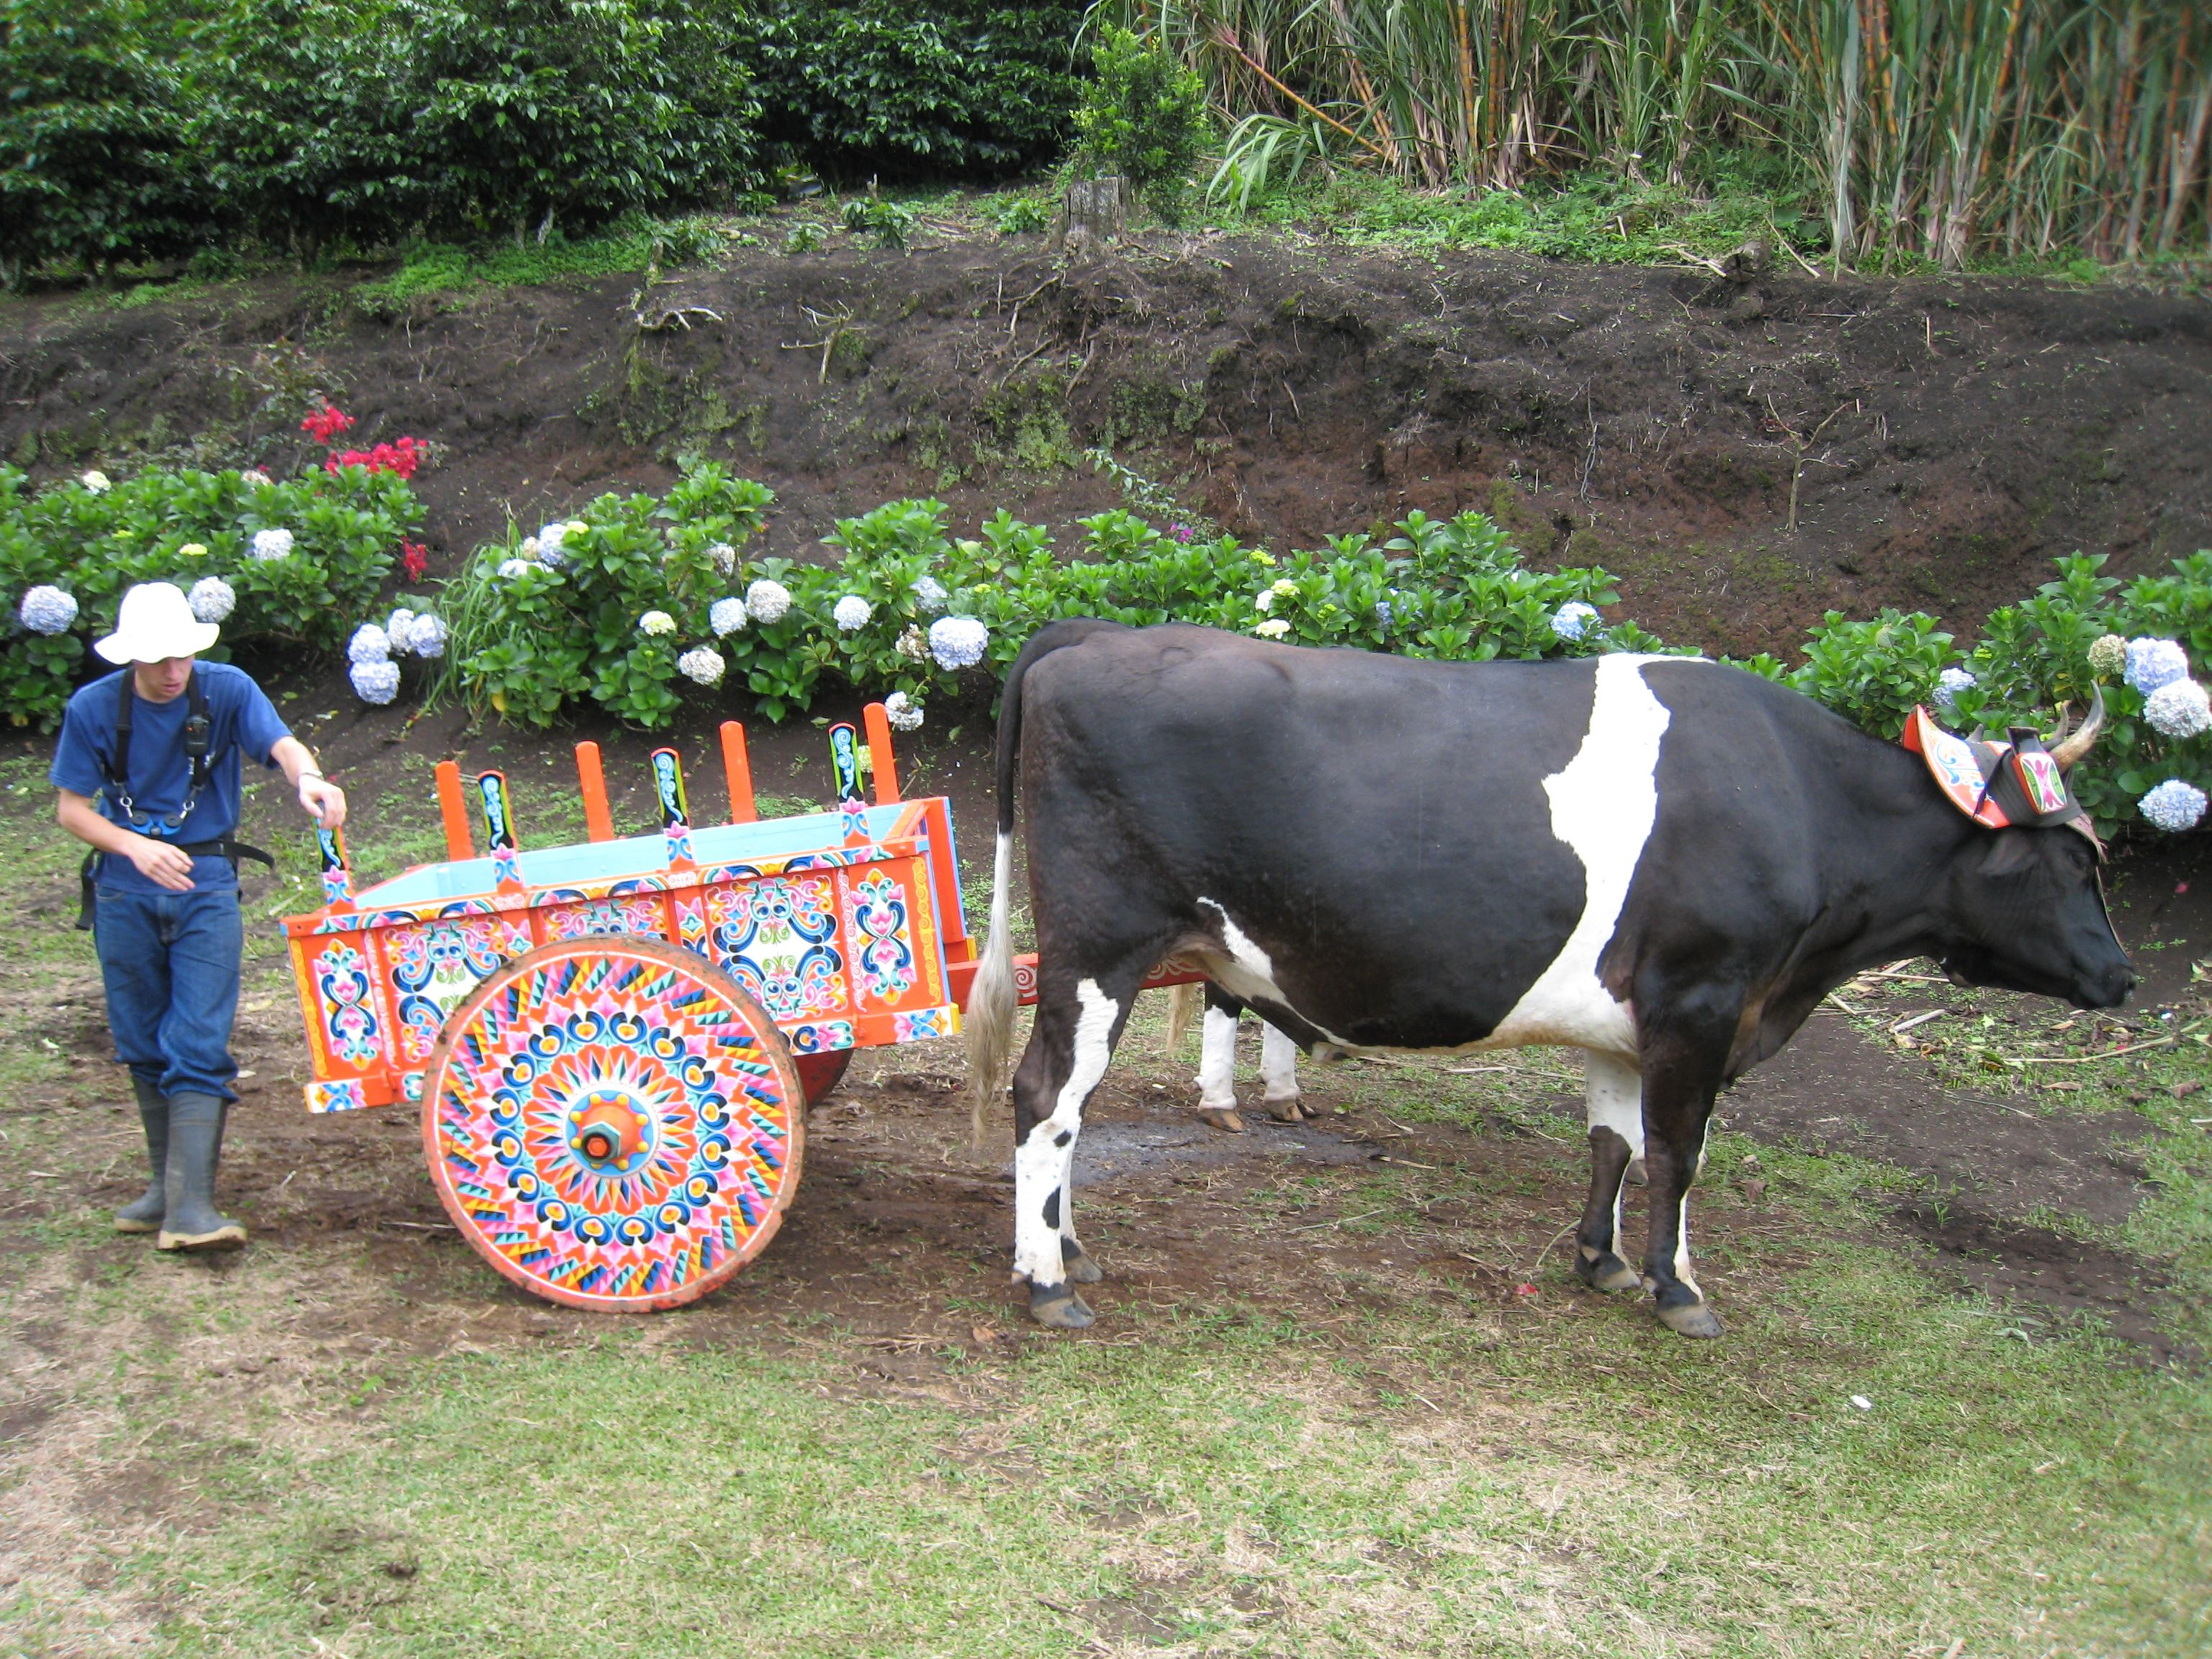 Thecowpushingthedecoratedcartg 30722304 gt mg the costa rican decorated ox cart uescos rep list of intangible cultural heritage of humanity buycottarizona